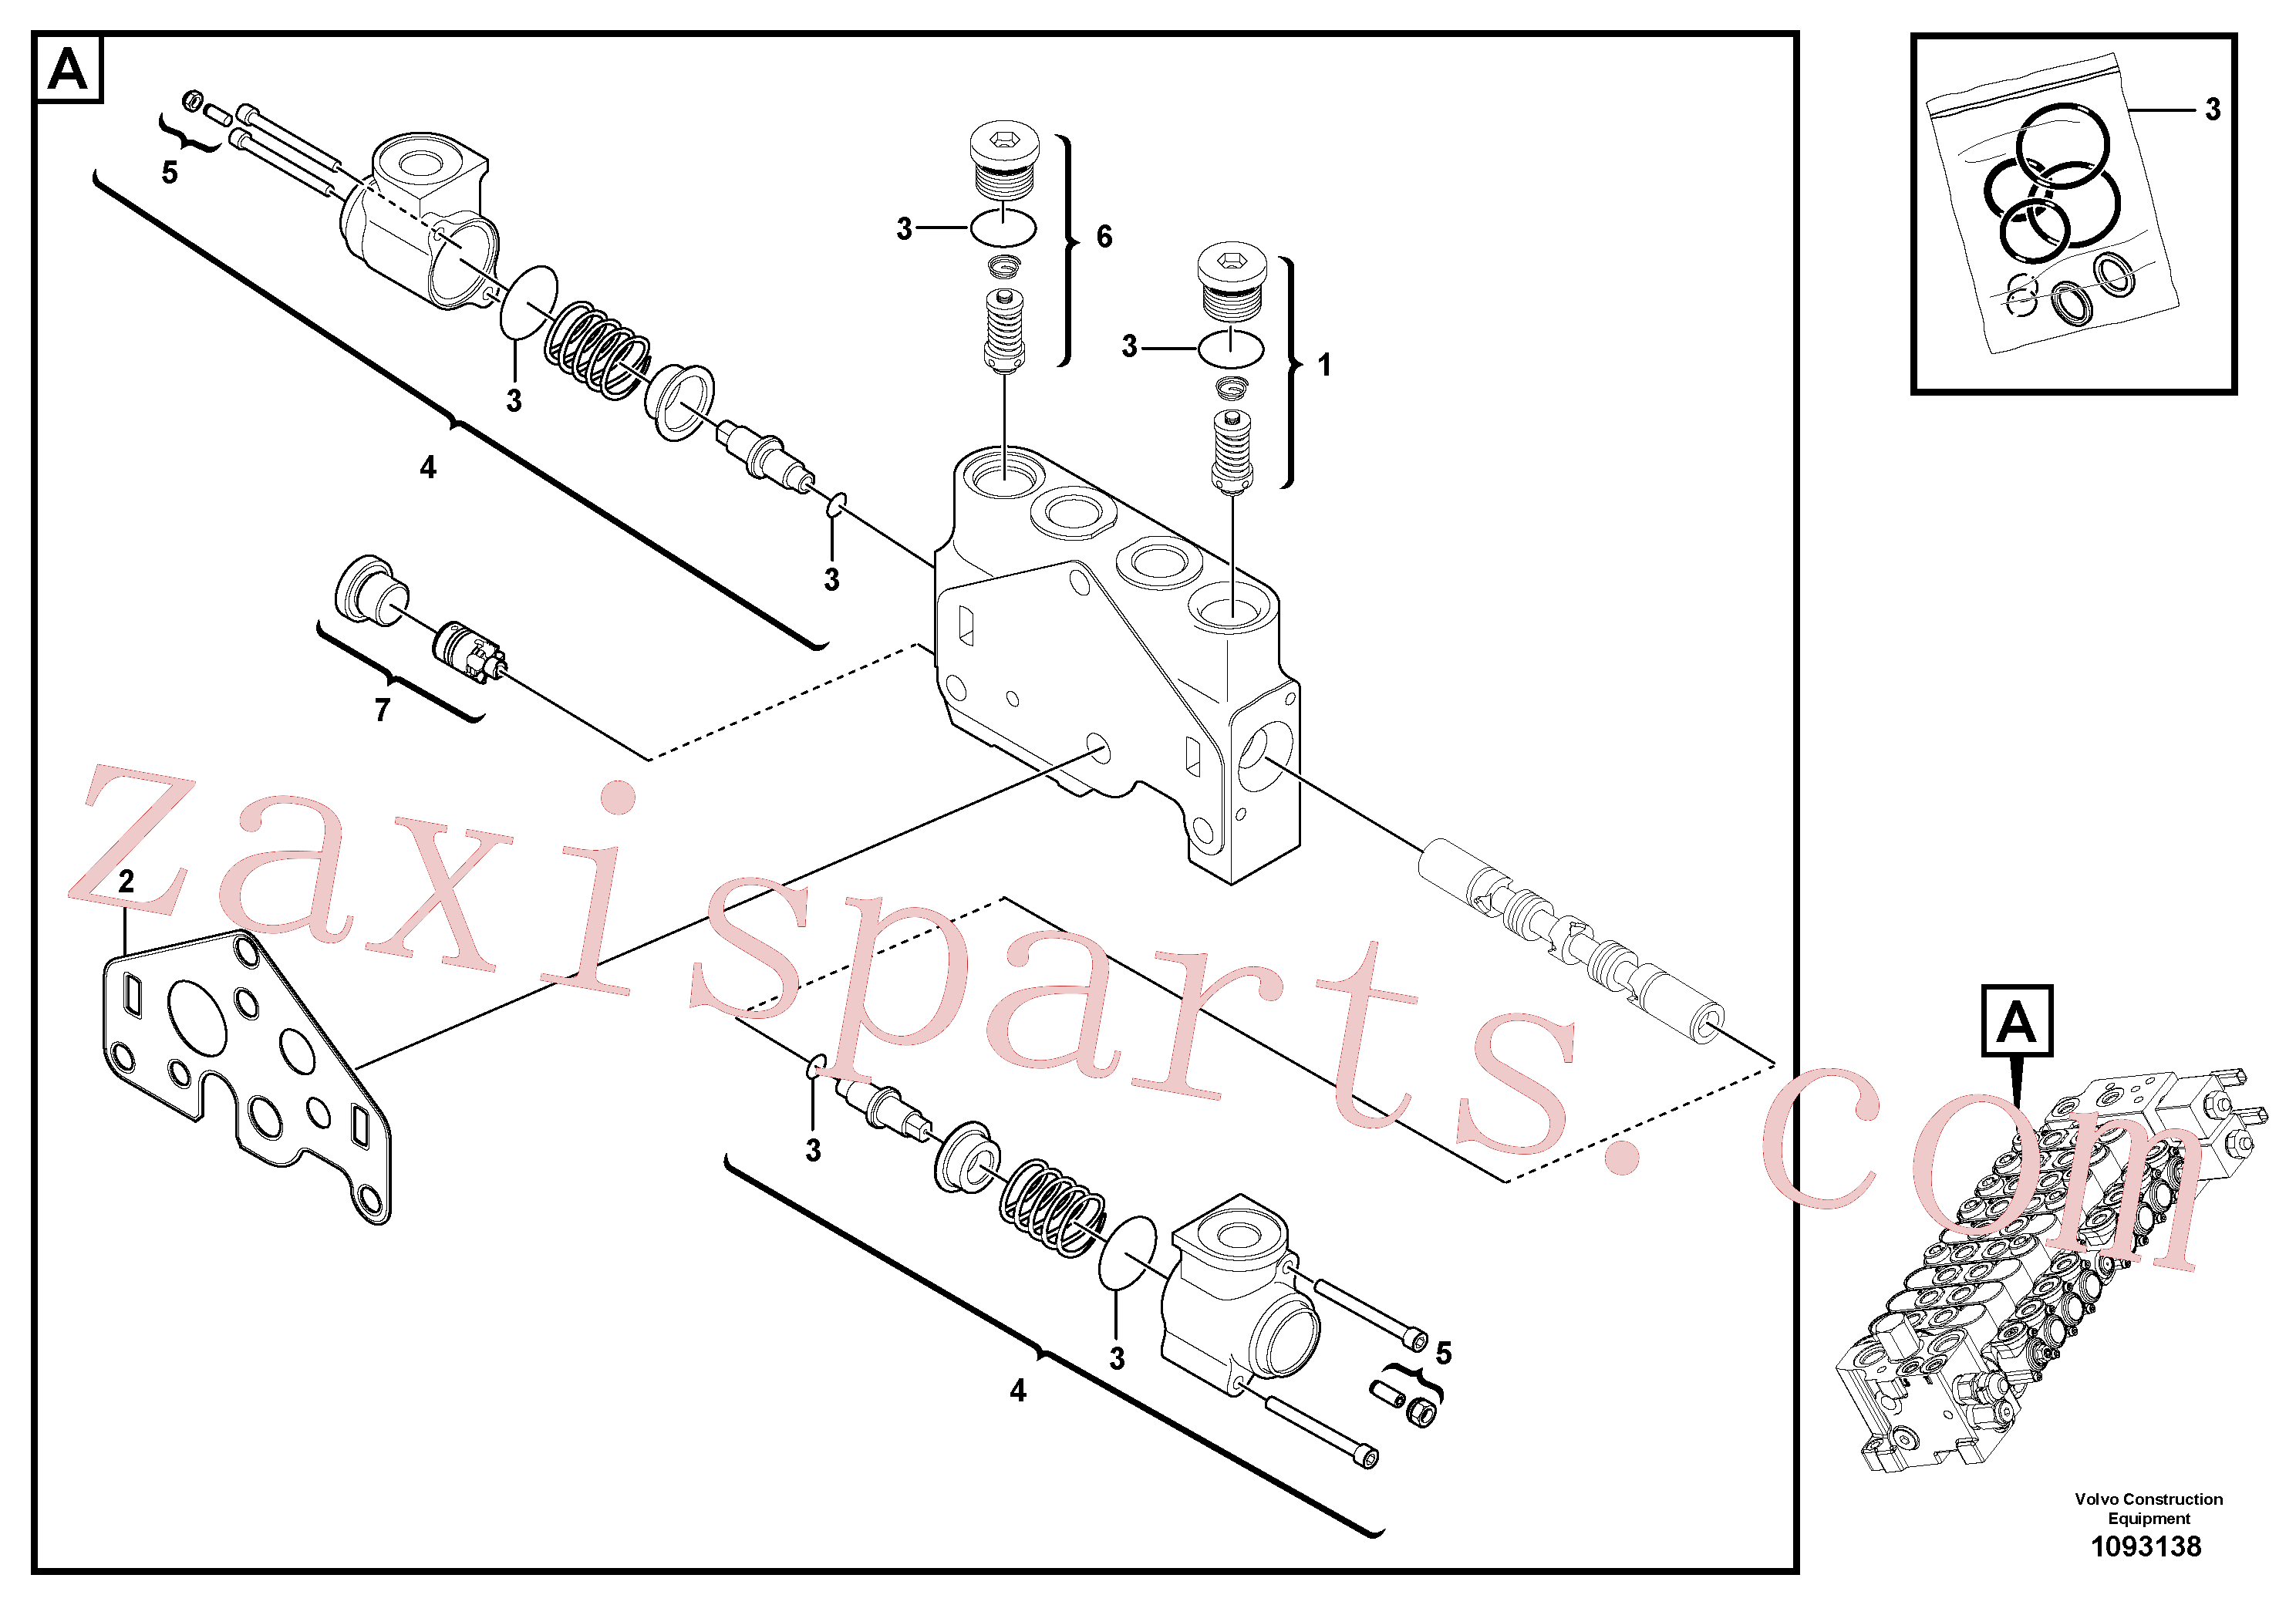 VOE17420194 for Volvo Valve section(1093138 assembly)